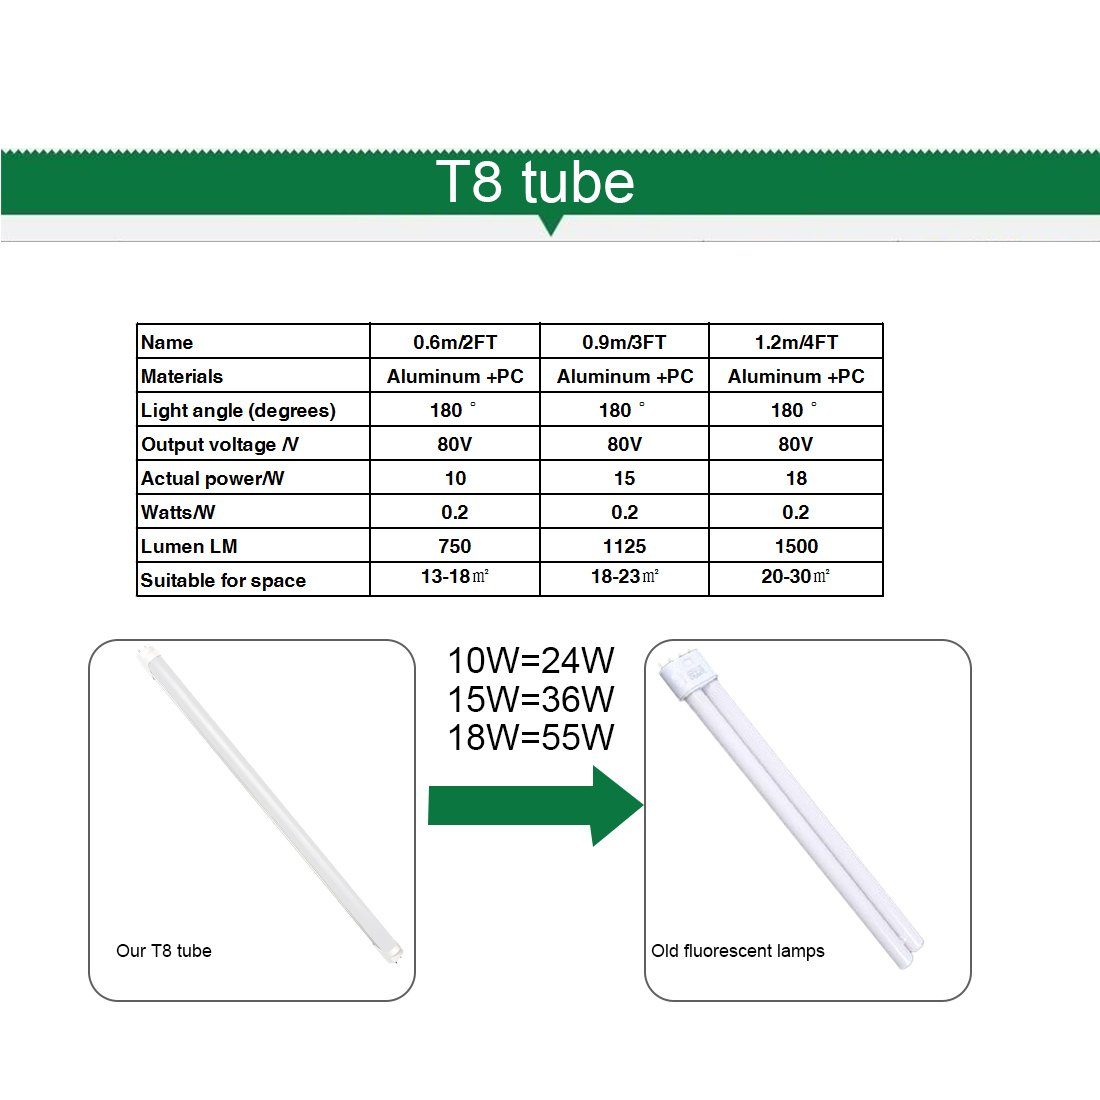 LED Tube Light Fluorescent Replacement Light Fixture for Utility and Recreation Room T8 Lighting Shop Living Room Kitchens Basements Grocery Stores Retailers Parking Lots 2FT 10W 3000K 1pc TXYDLED